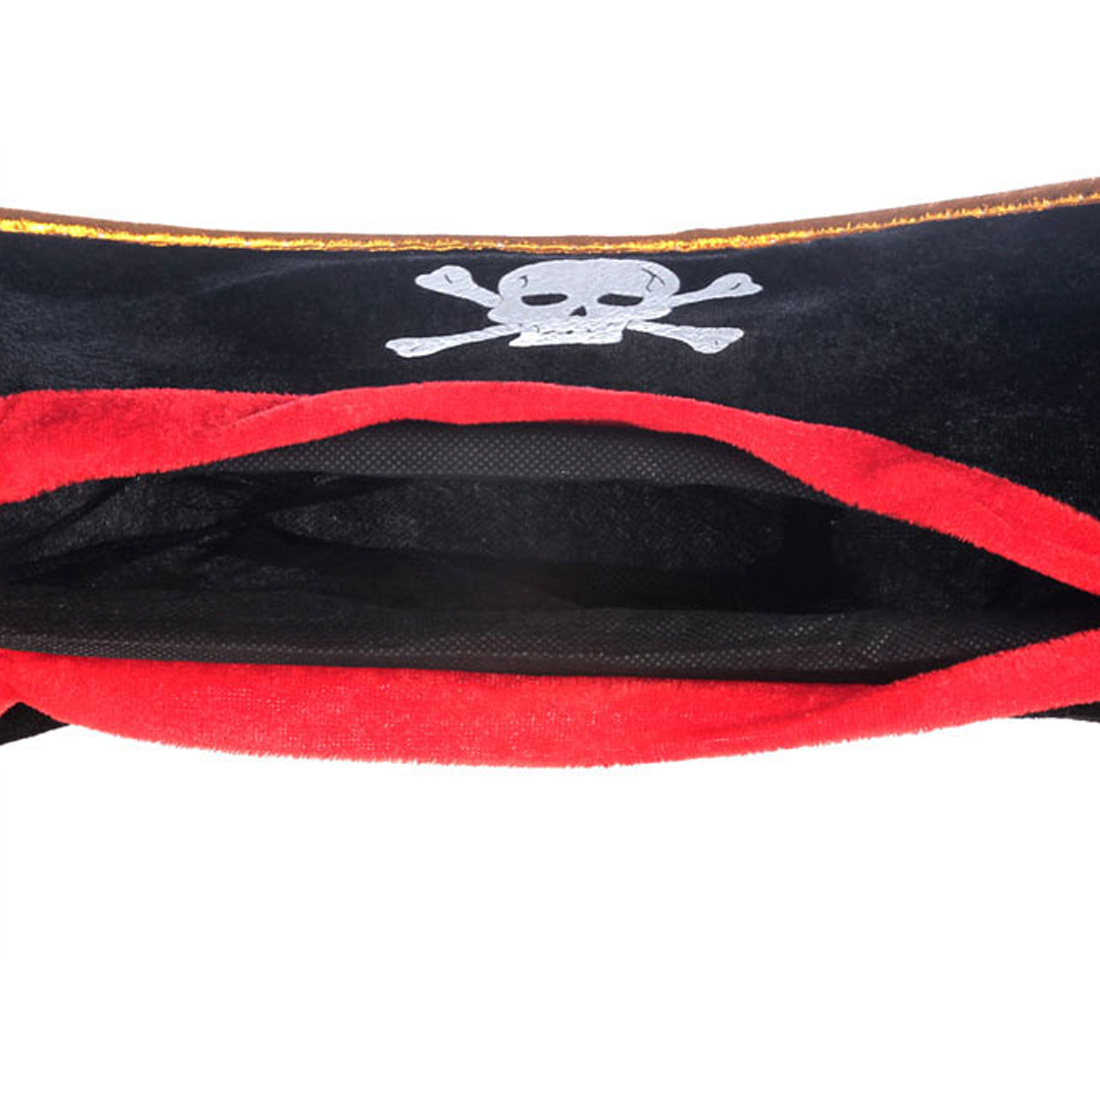 1e5c07d92da Party Hats Cheap Party Hats New Arrival Halloween Accessories Skull.We  offer the best wholesale price